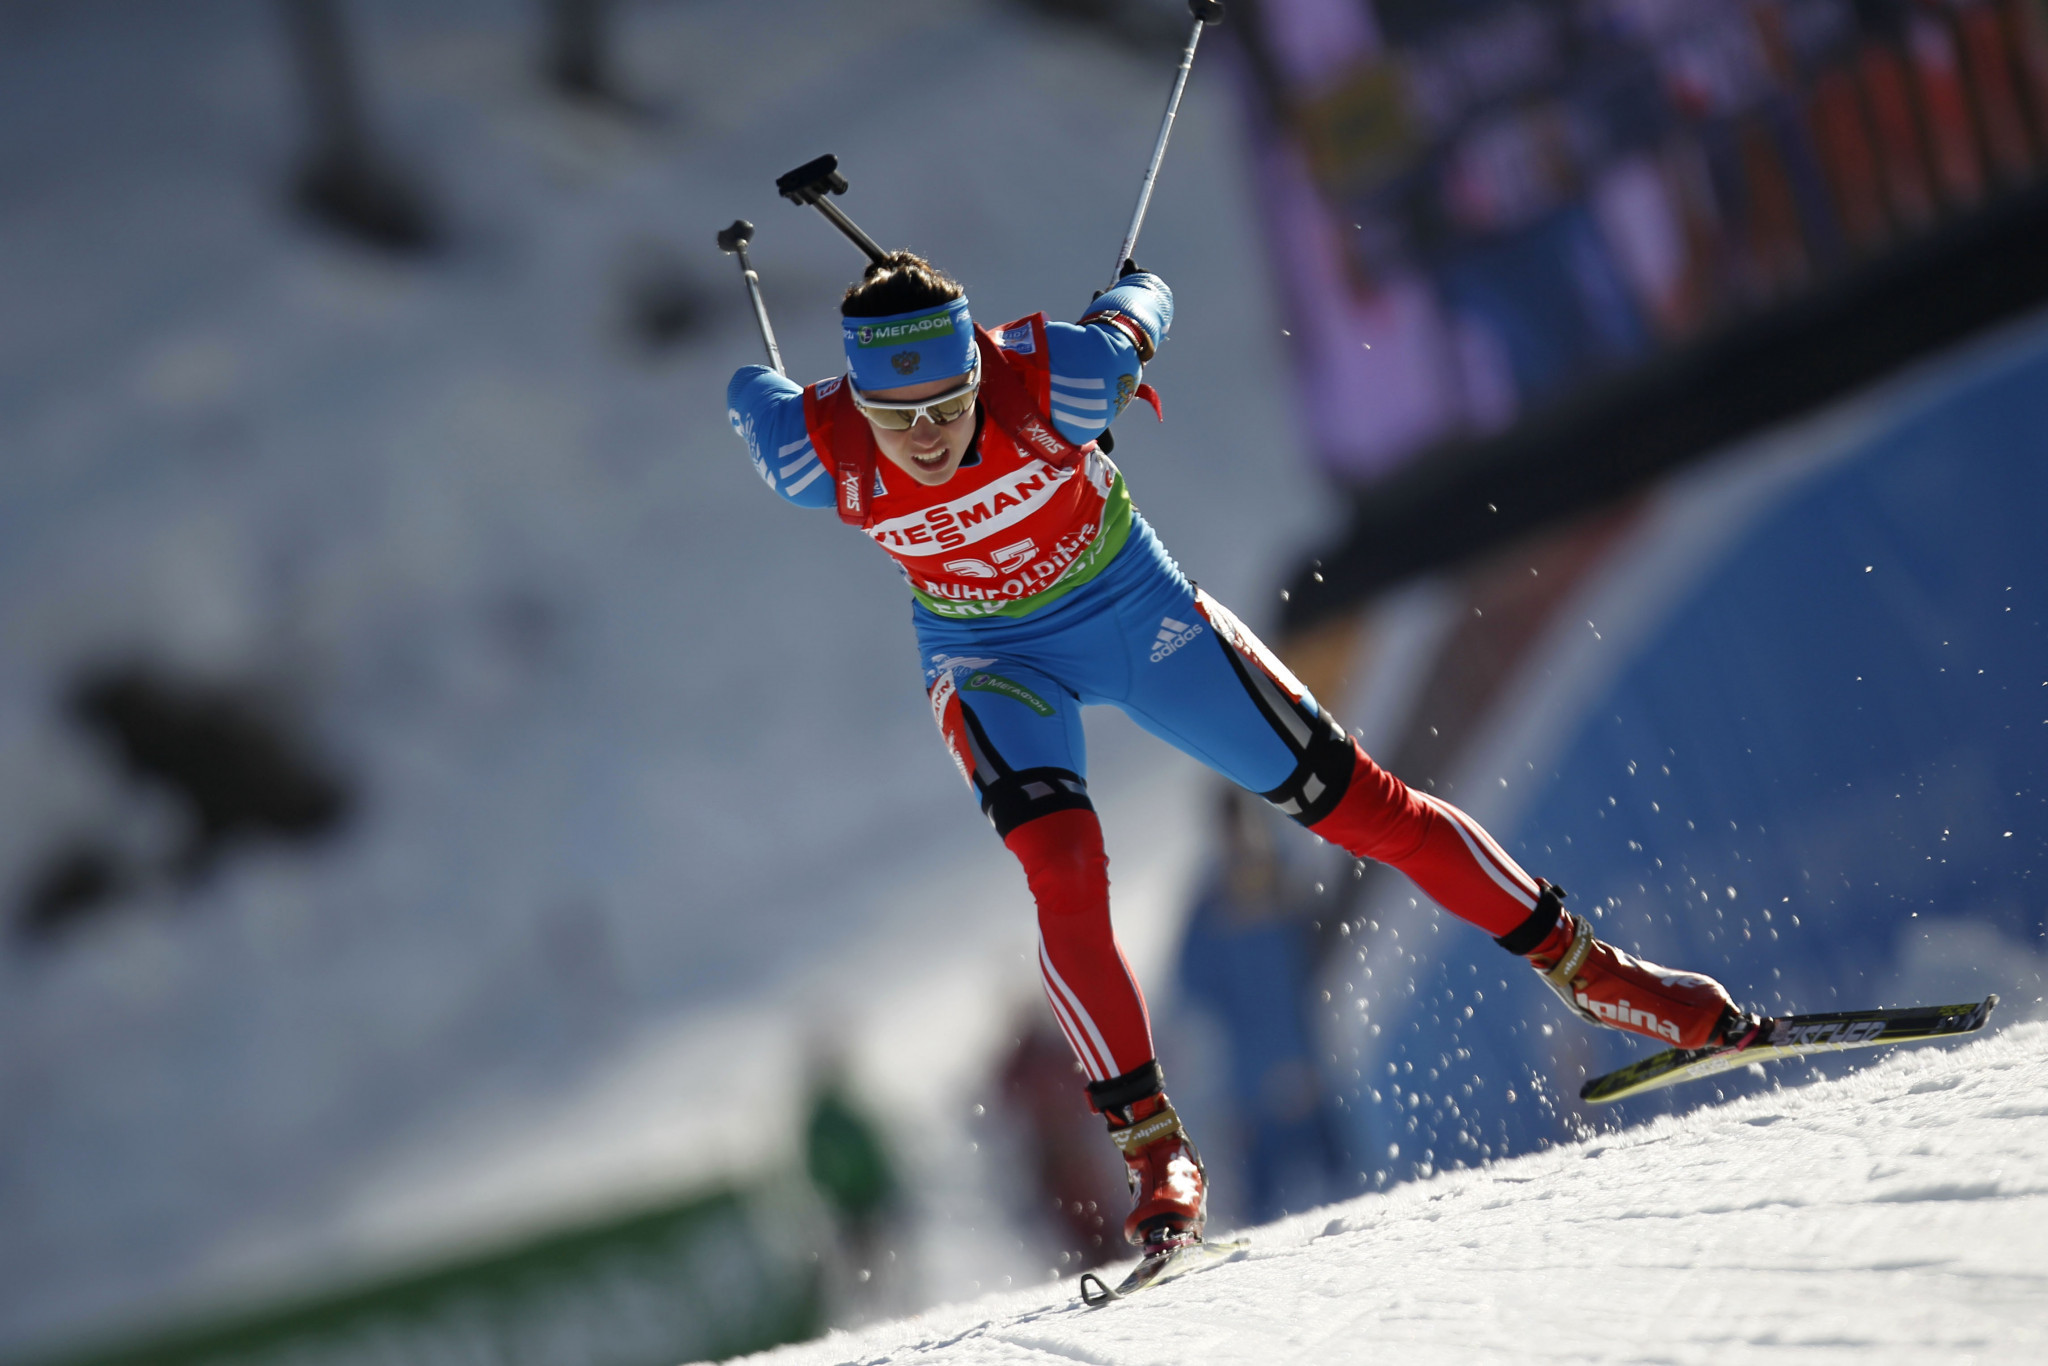 Svetlana Sleptsova was named by Russian media as being an athlete allegedly implicated by LIMS data ©Getty Images